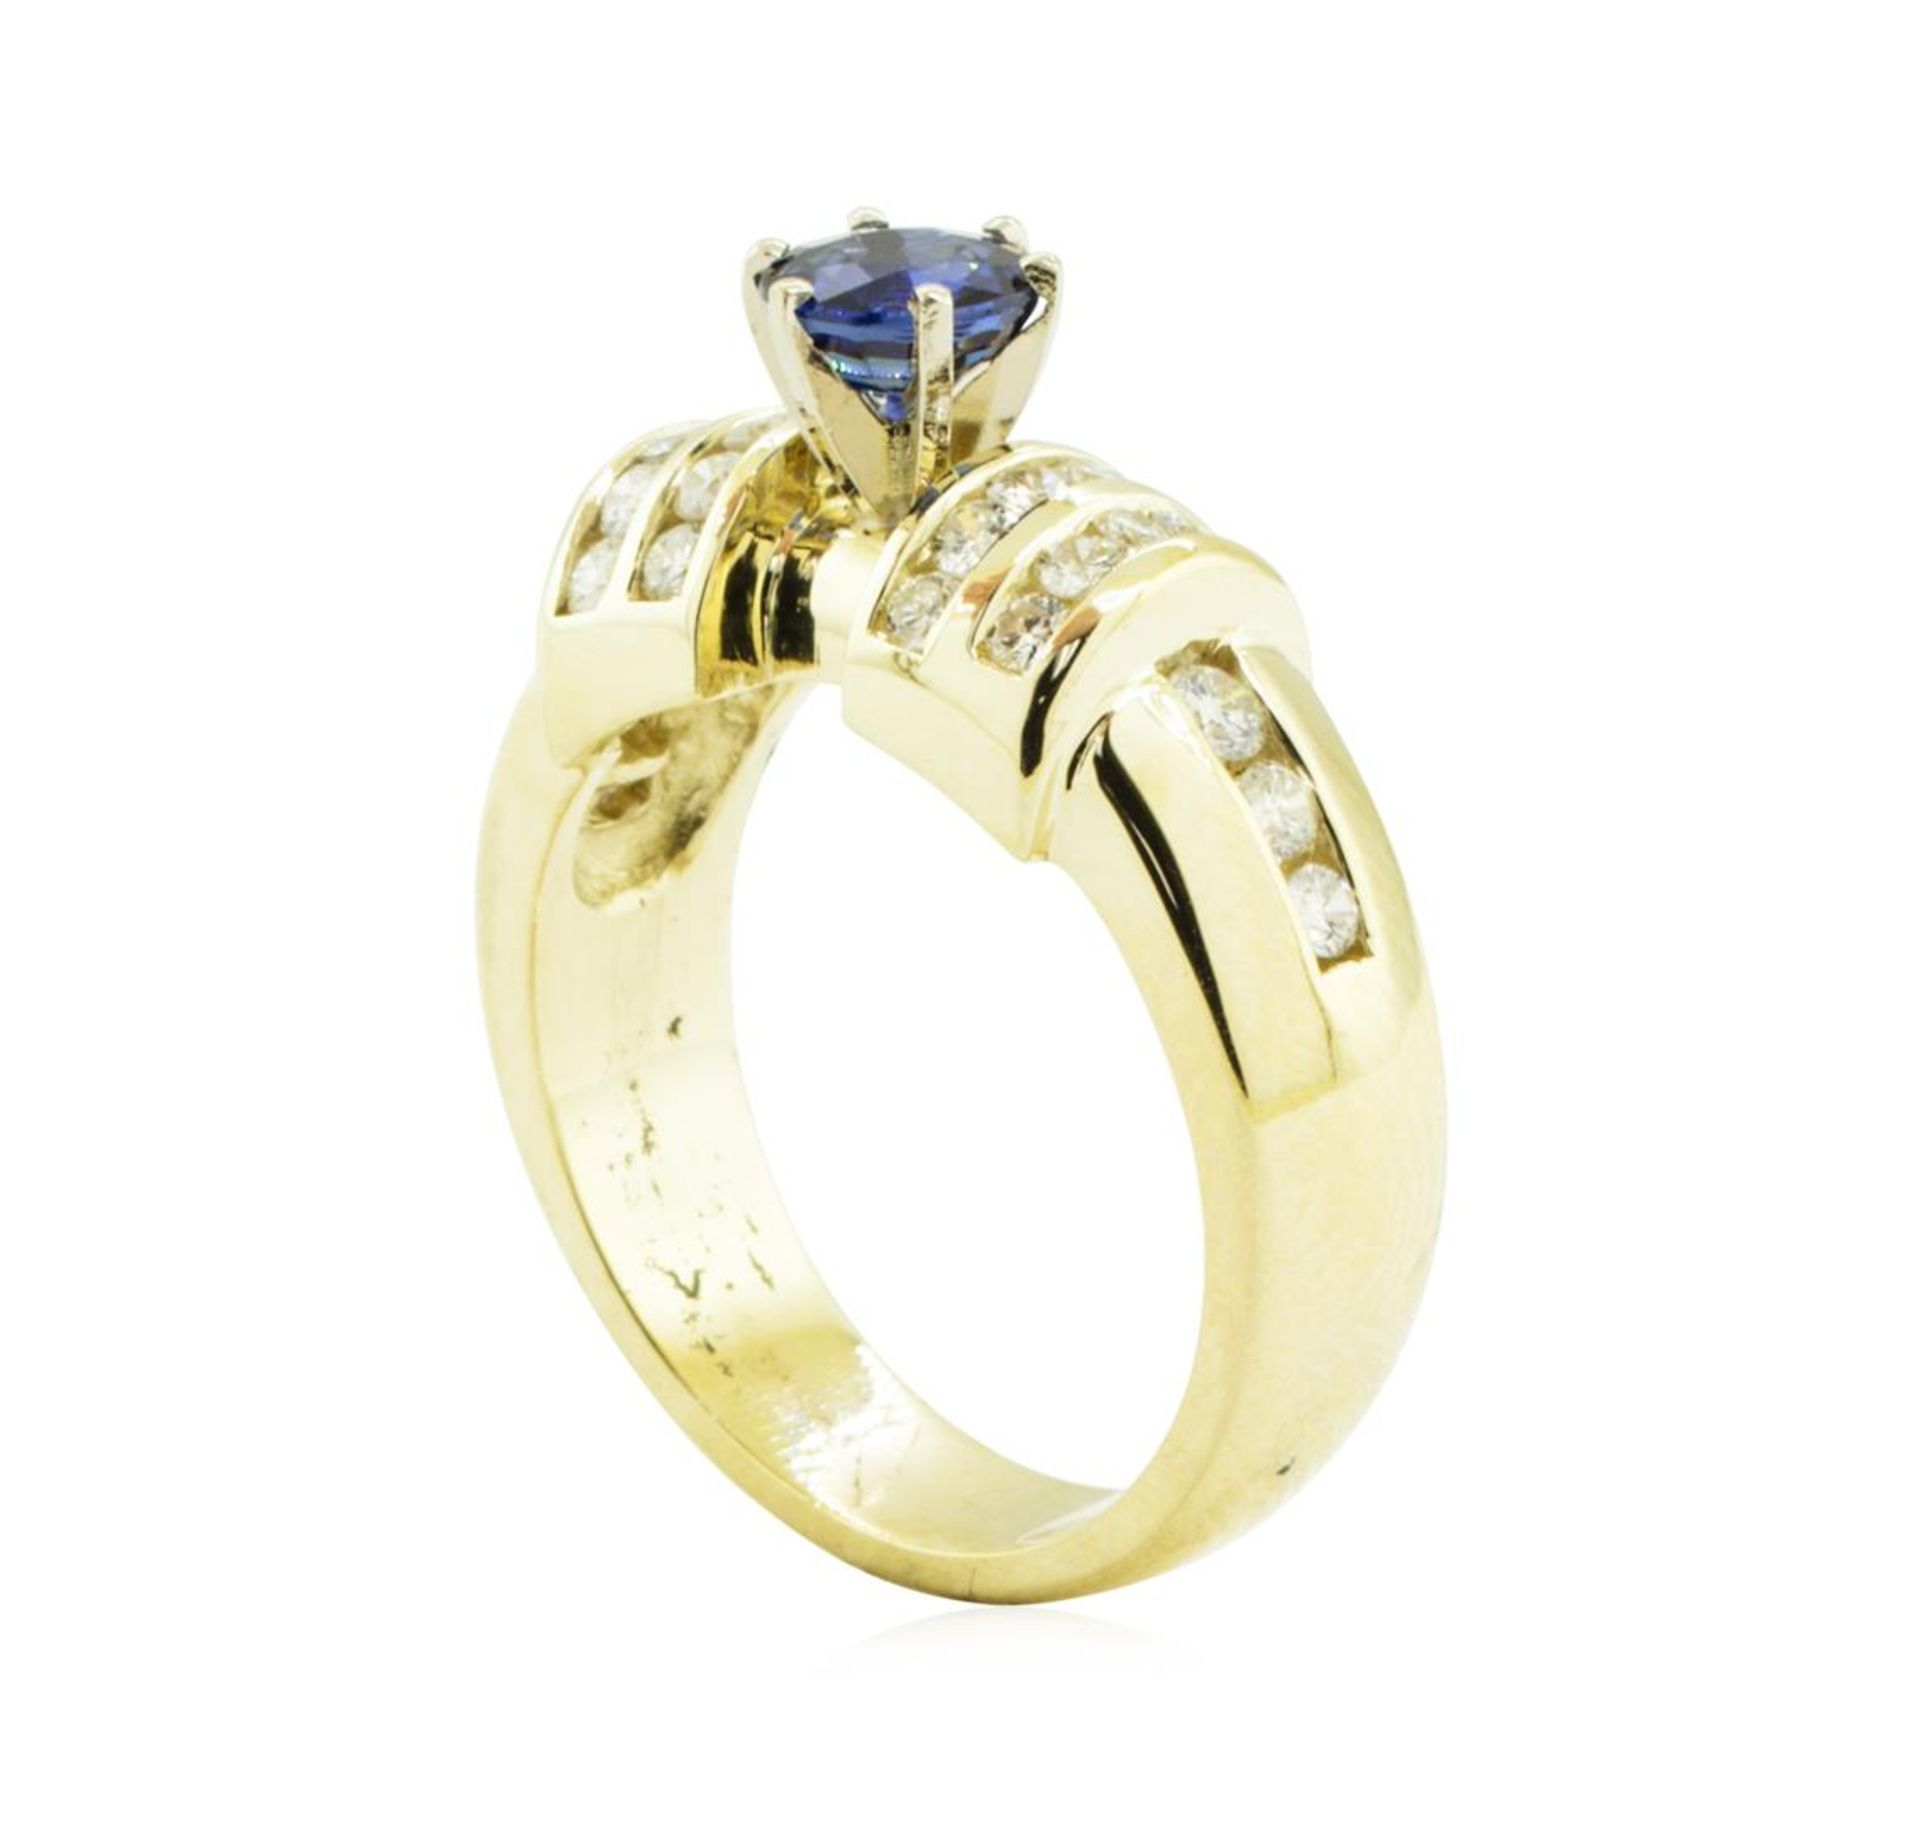 1.40 ctw Round Brilliant Blue Sapphire And Diamond Ring - 14KT Yellow Gold - Image 4 of 5